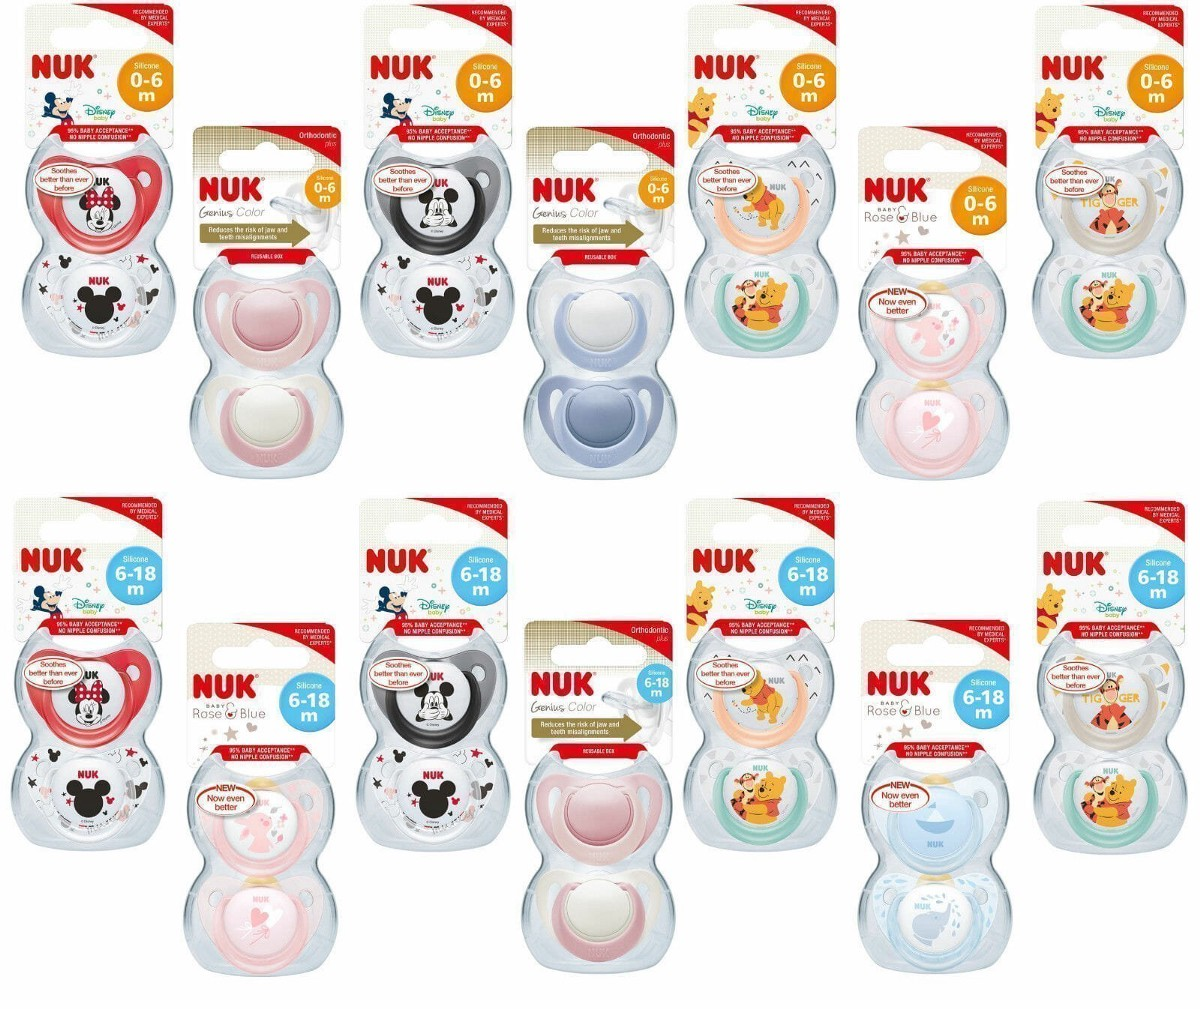 NUK Winnie the Pooh Silicone Soothers 2pk 0-6 Months colour //design may vary